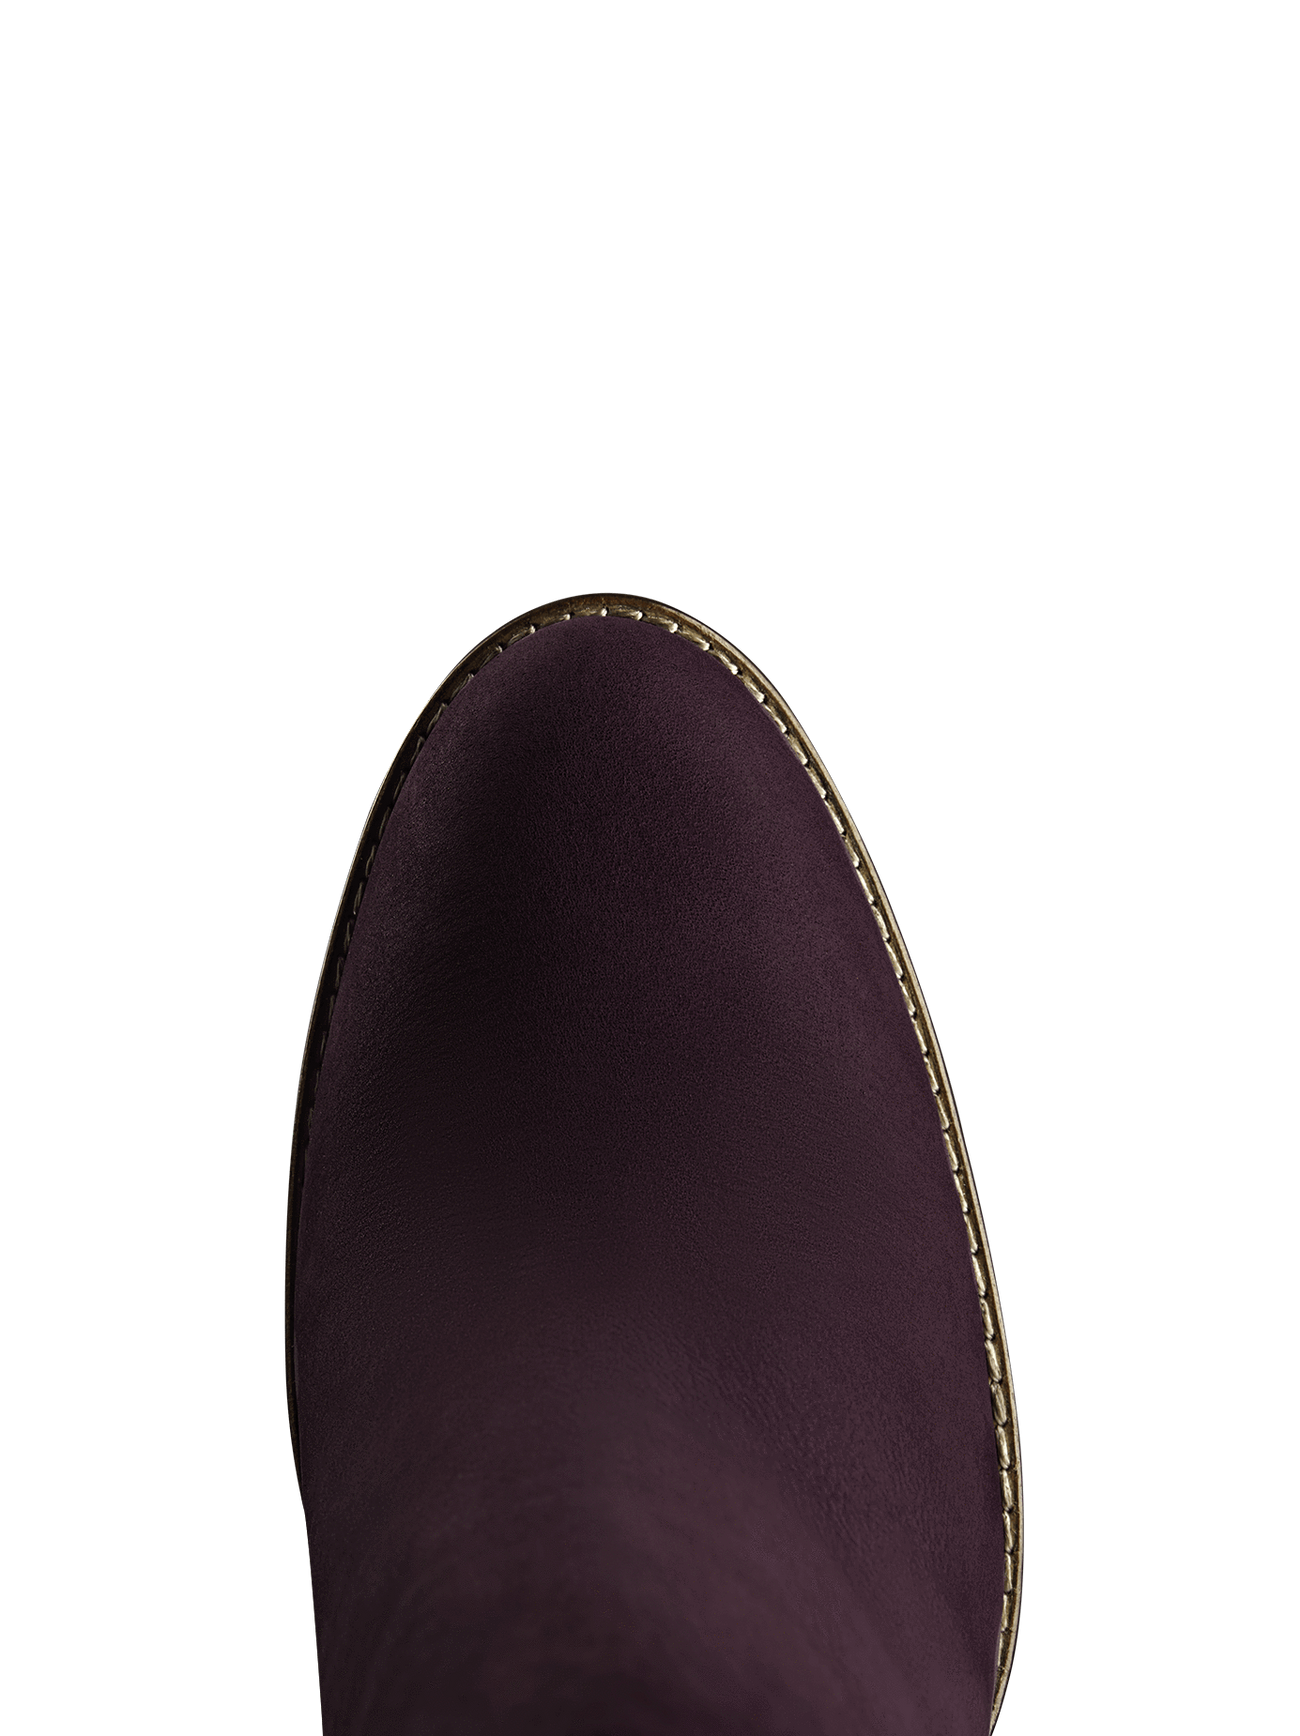 This purple ankle boot has an almond toe shape highlighted by contrast stitching.